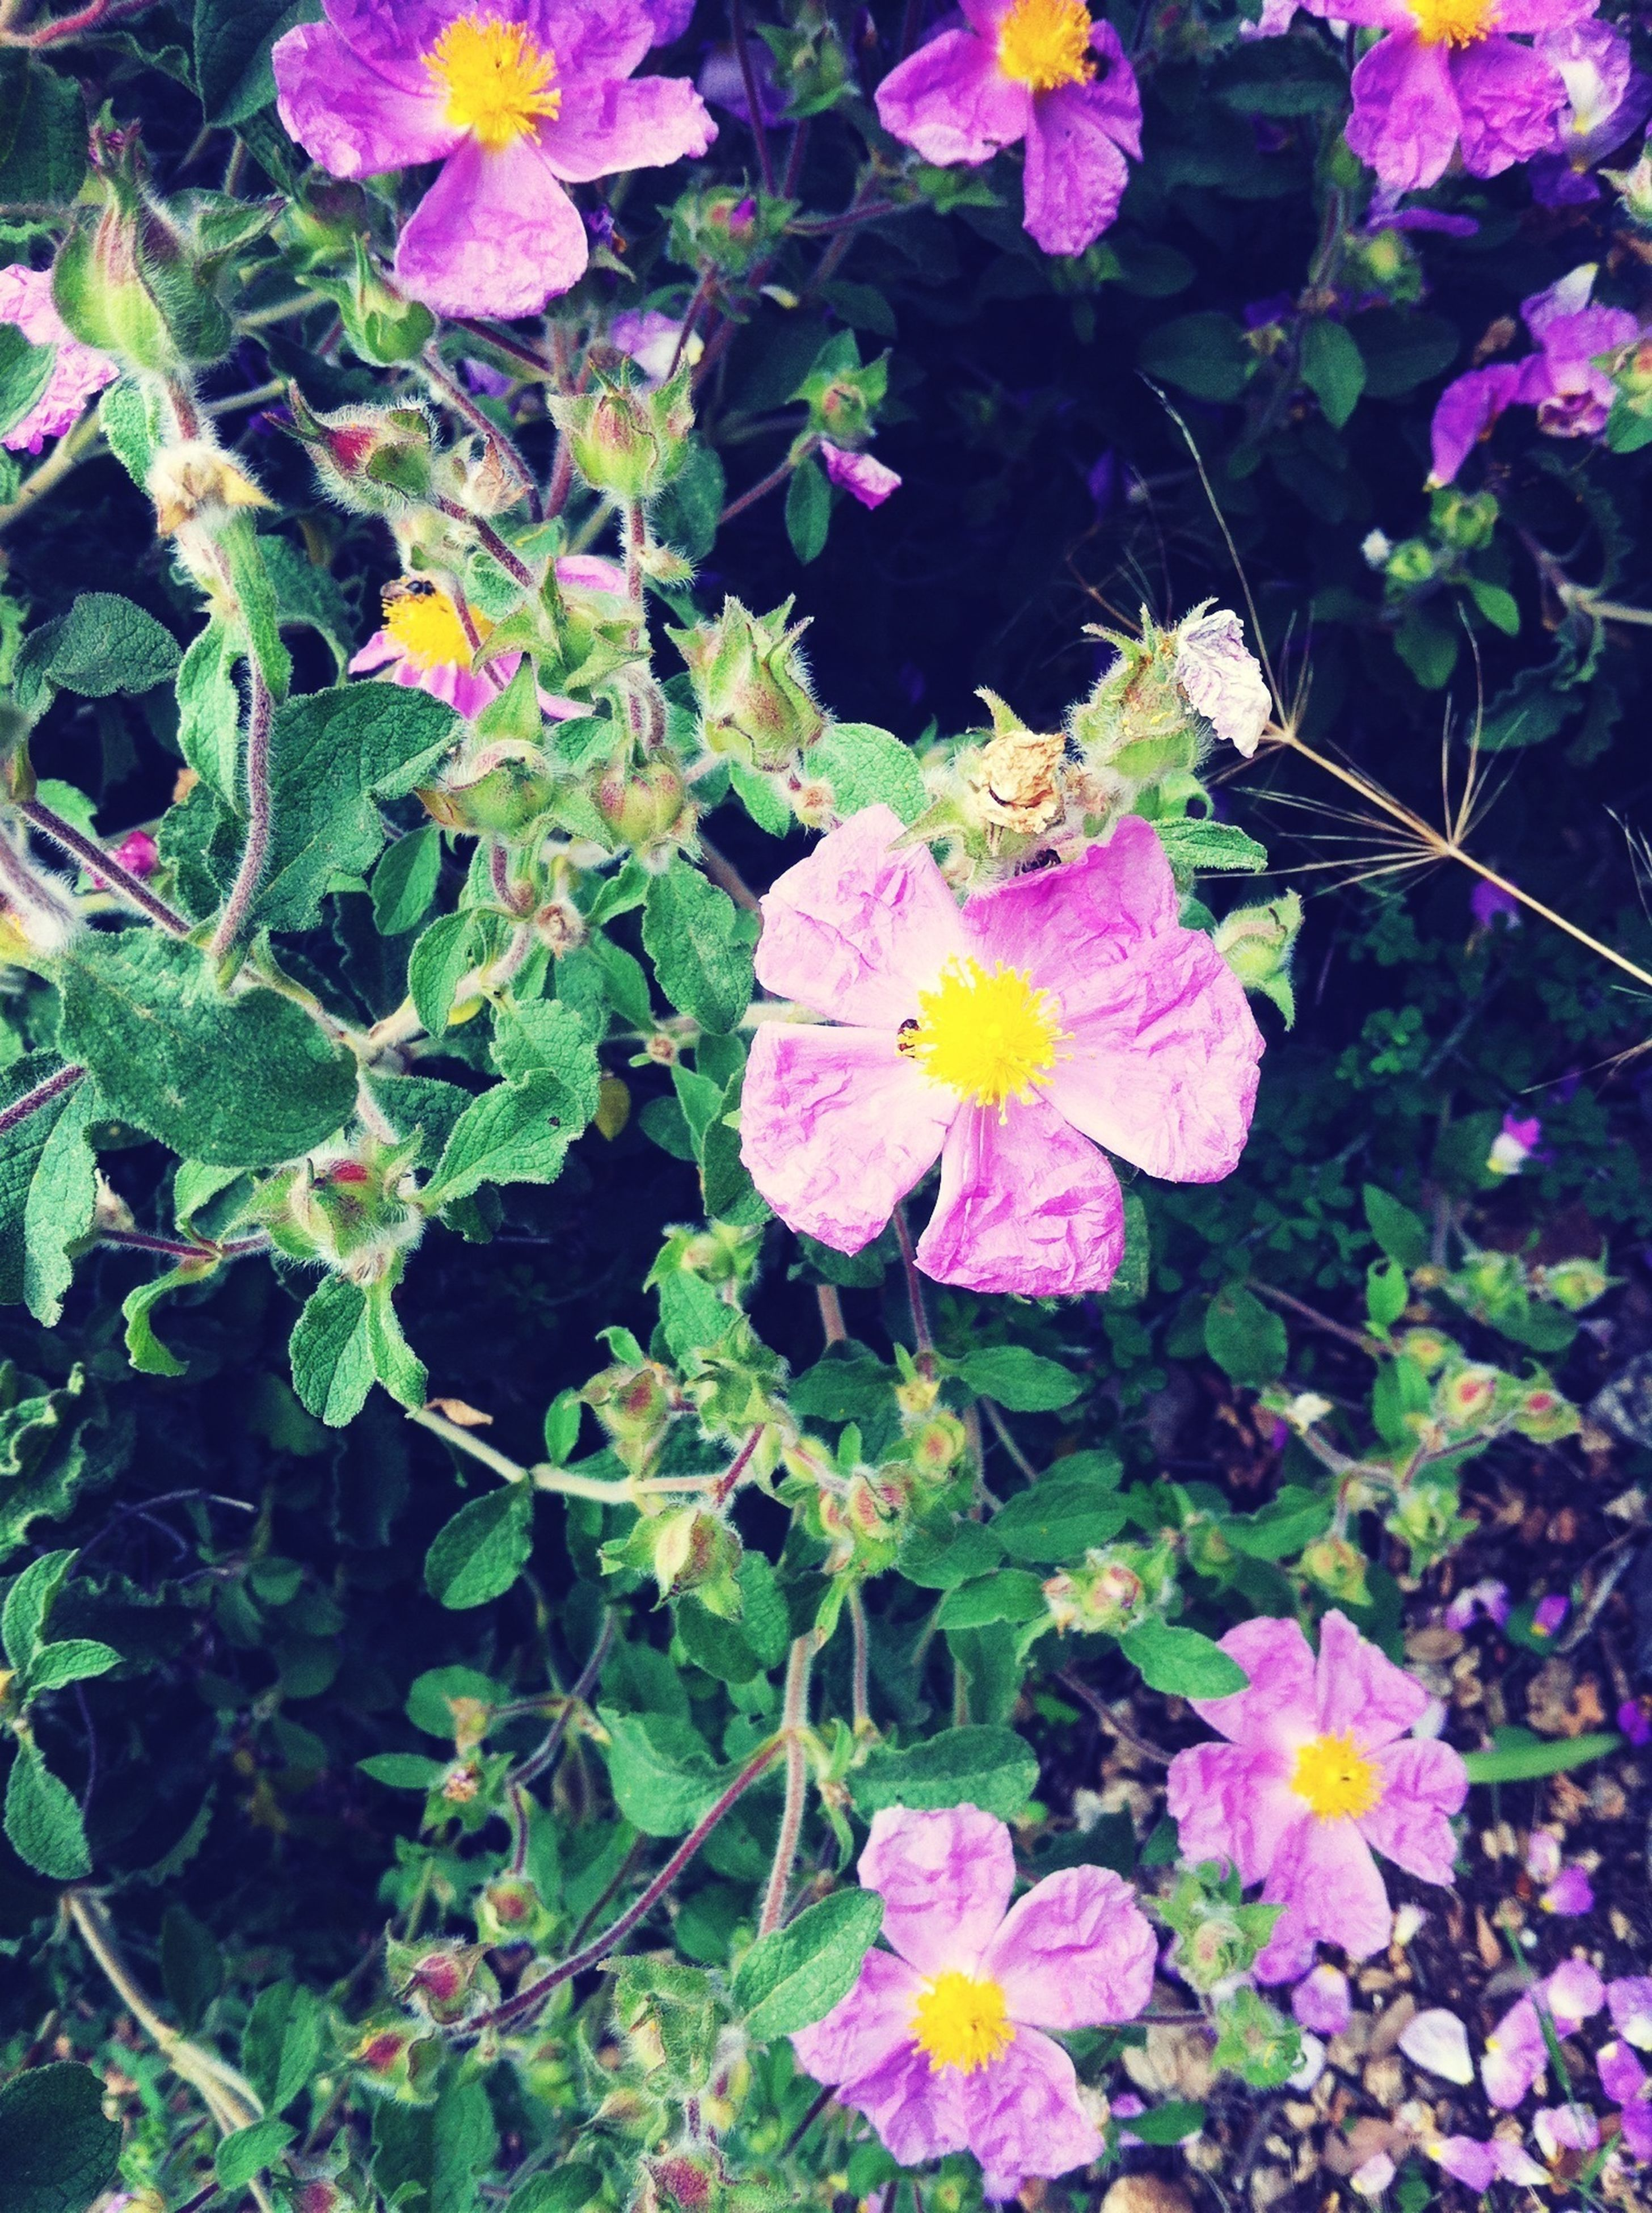 flower, freshness, petal, fragility, growth, beauty in nature, flower head, blooming, leaf, high angle view, plant, nature, pink color, in bloom, park - man made space, close-up, purple, outdoors, day, no people